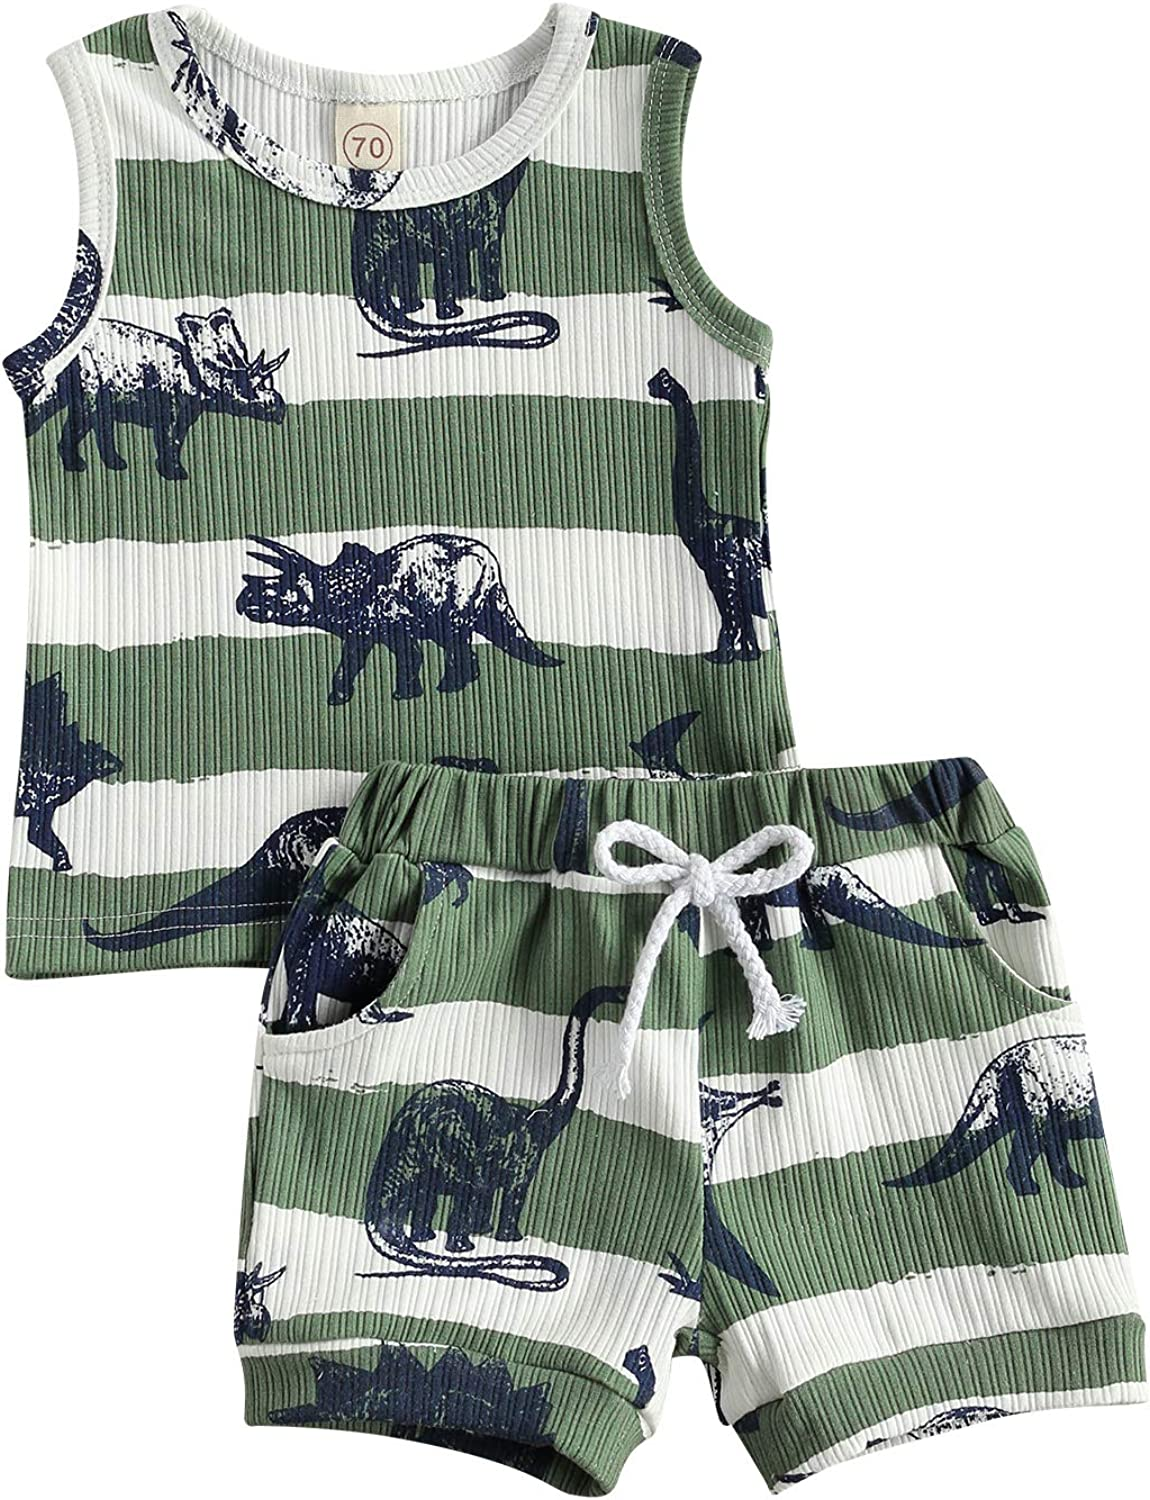 Infant Newborn Baby Boy Summer Clothes Sleeveless Dinosaur Ribbed Tank Top Shorts Pants 2pc Casual Outfit Set